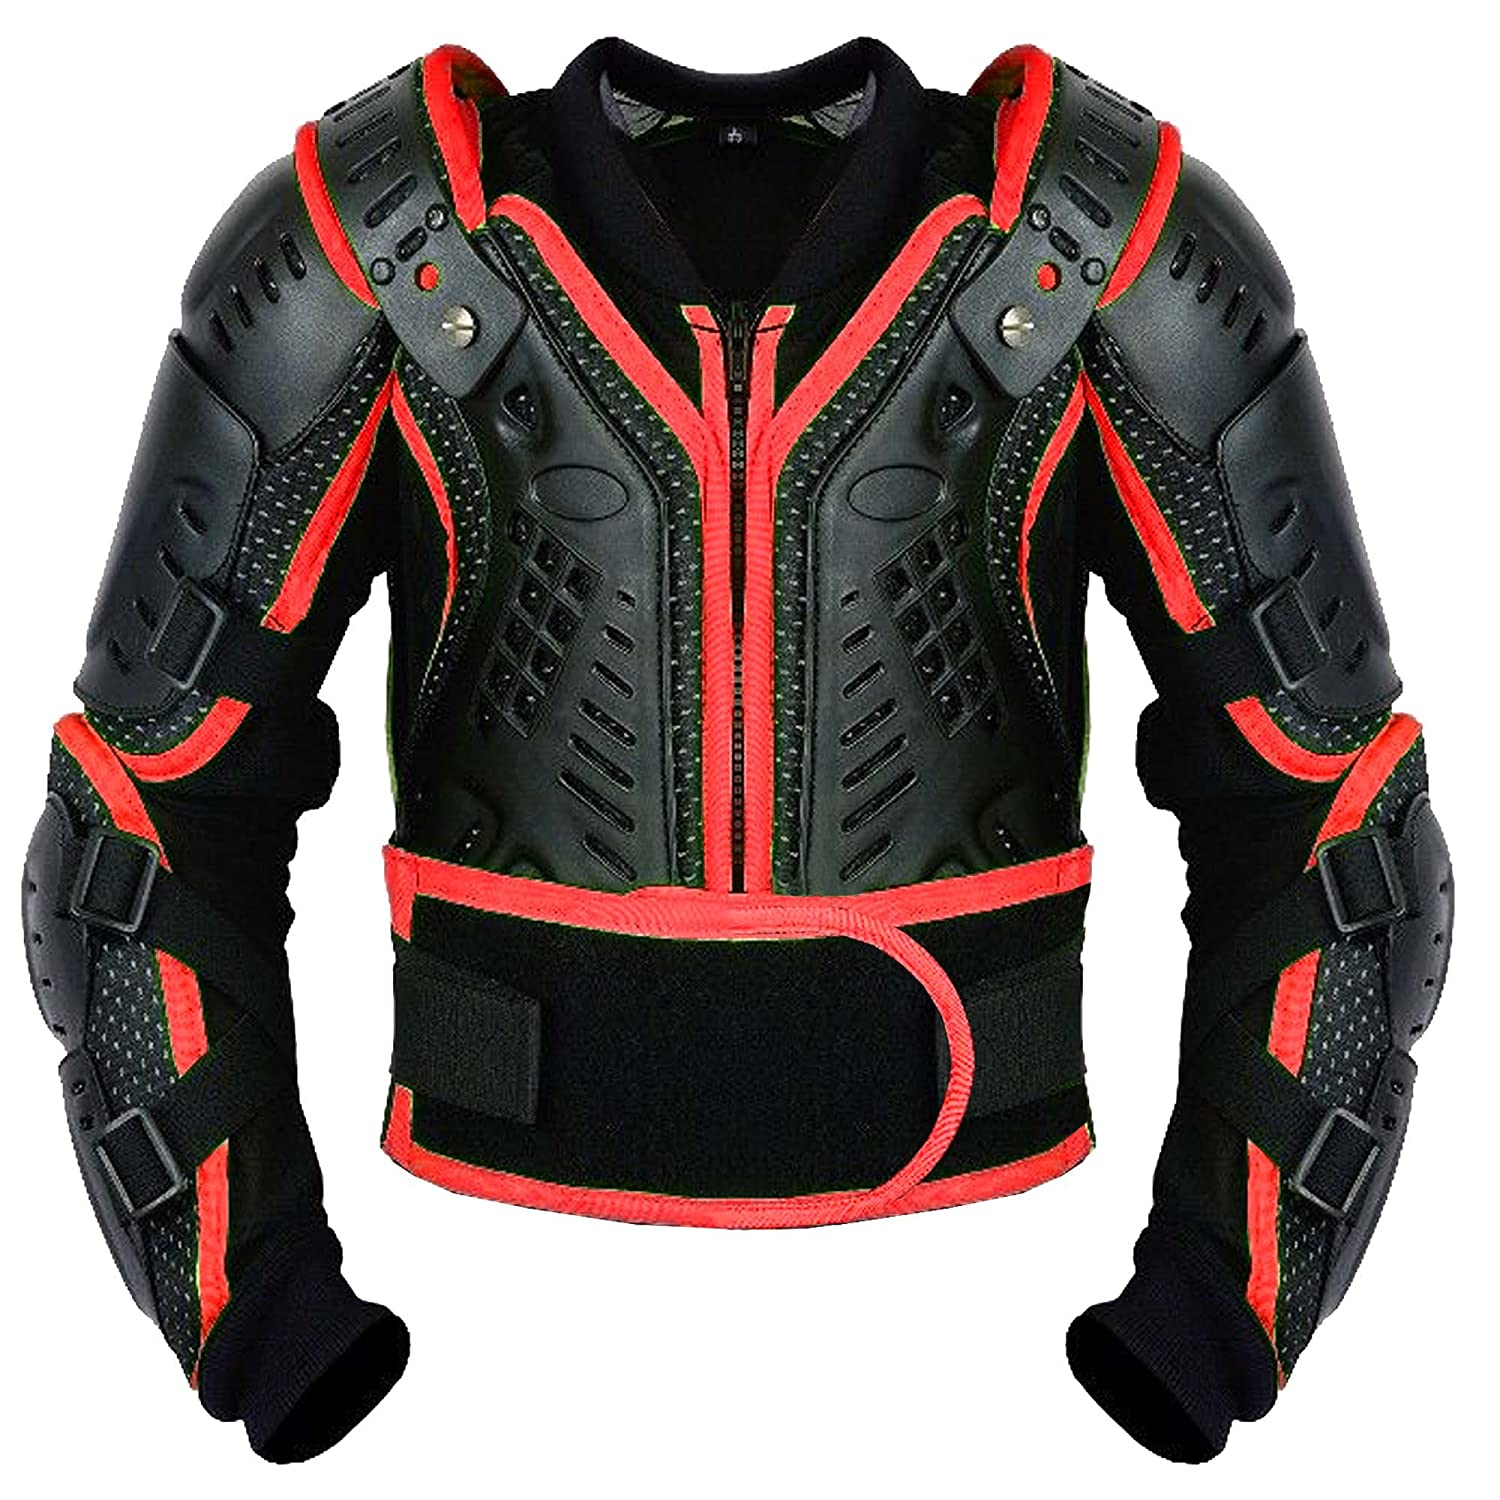 Kids Childrens Body Armour Motocross Motorbike Motorcyle Protection Jacket Motorcycle Body Guard CE Approved - Mountain Cycling